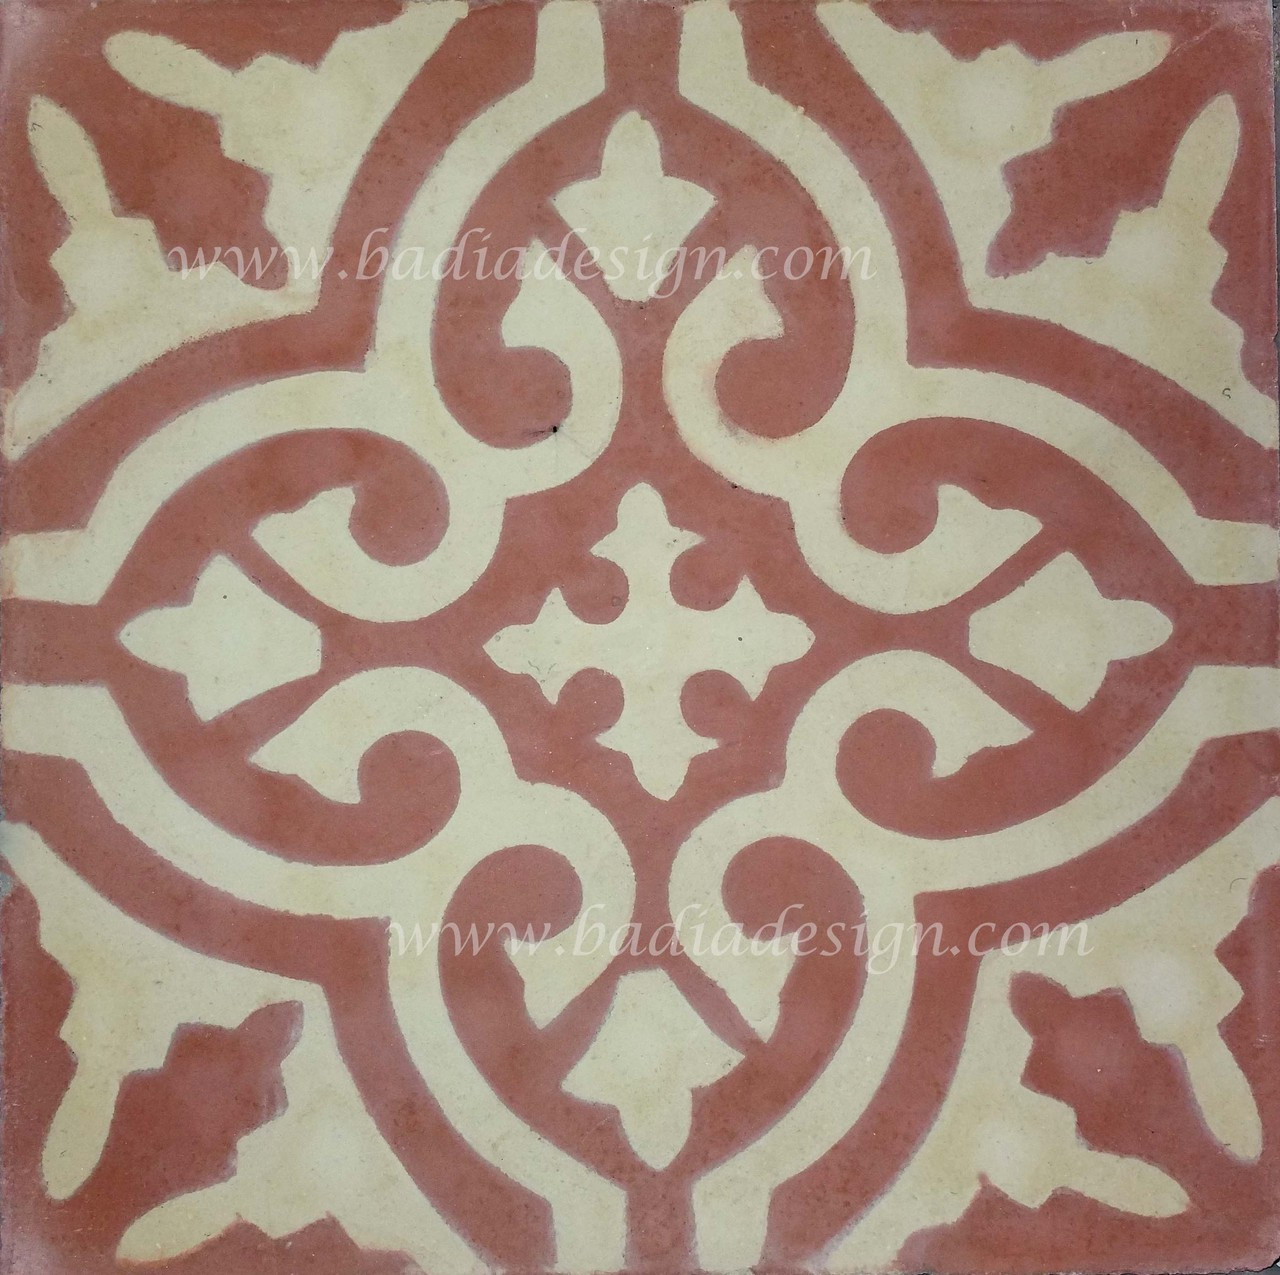 Moroccan Handmade Cement Tile From Badia Design Inc